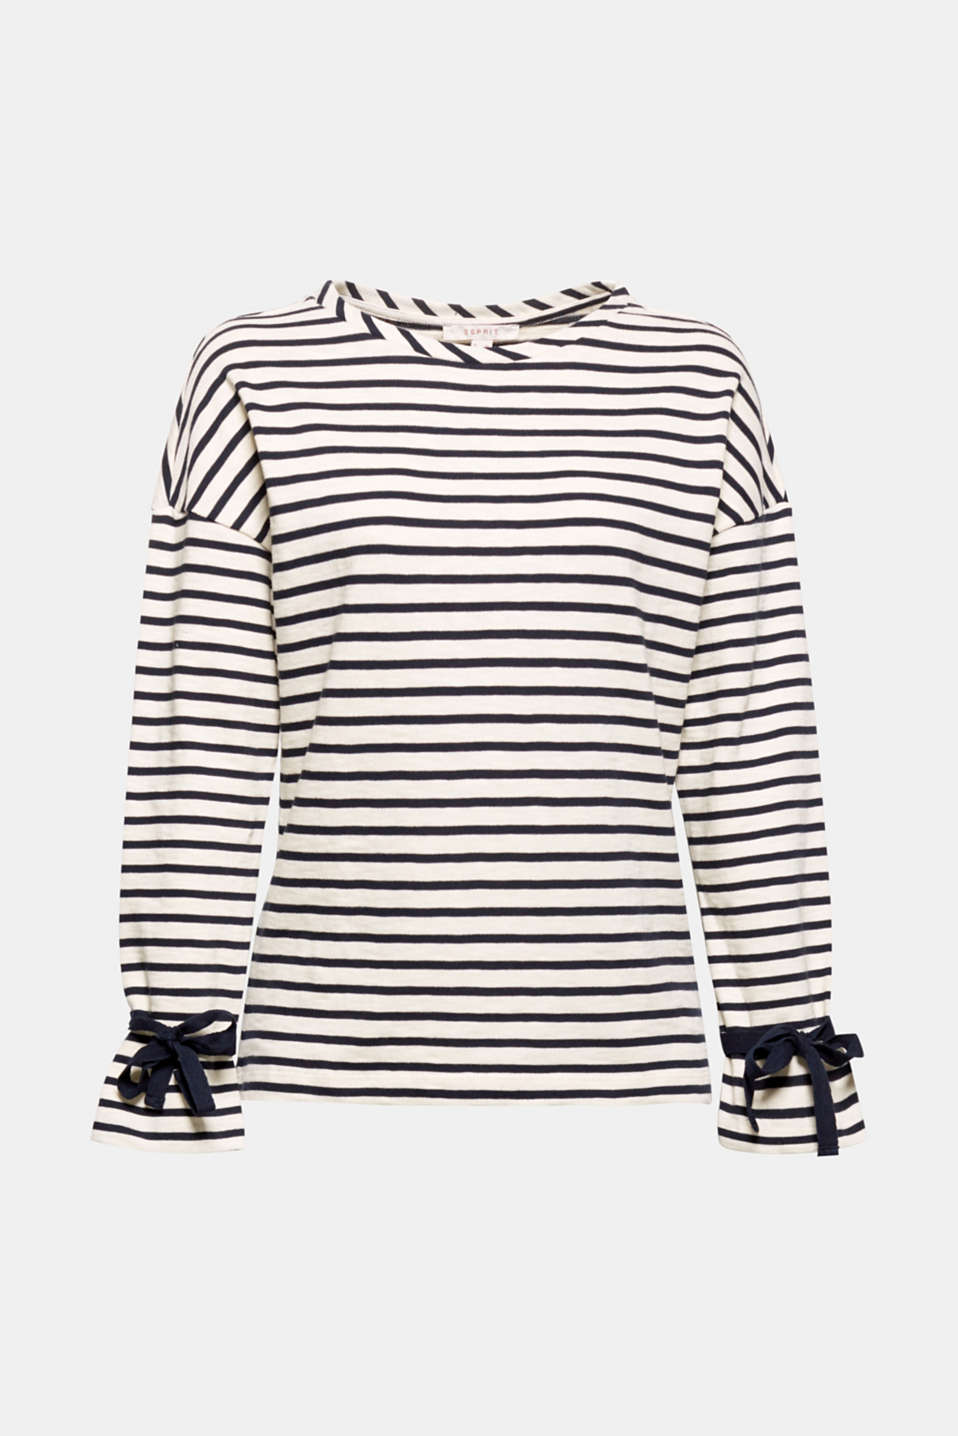 Striped design with fresh bow details! This jumper with decorative ribbons on both sleeves instantly conjures up a unique nautical look.